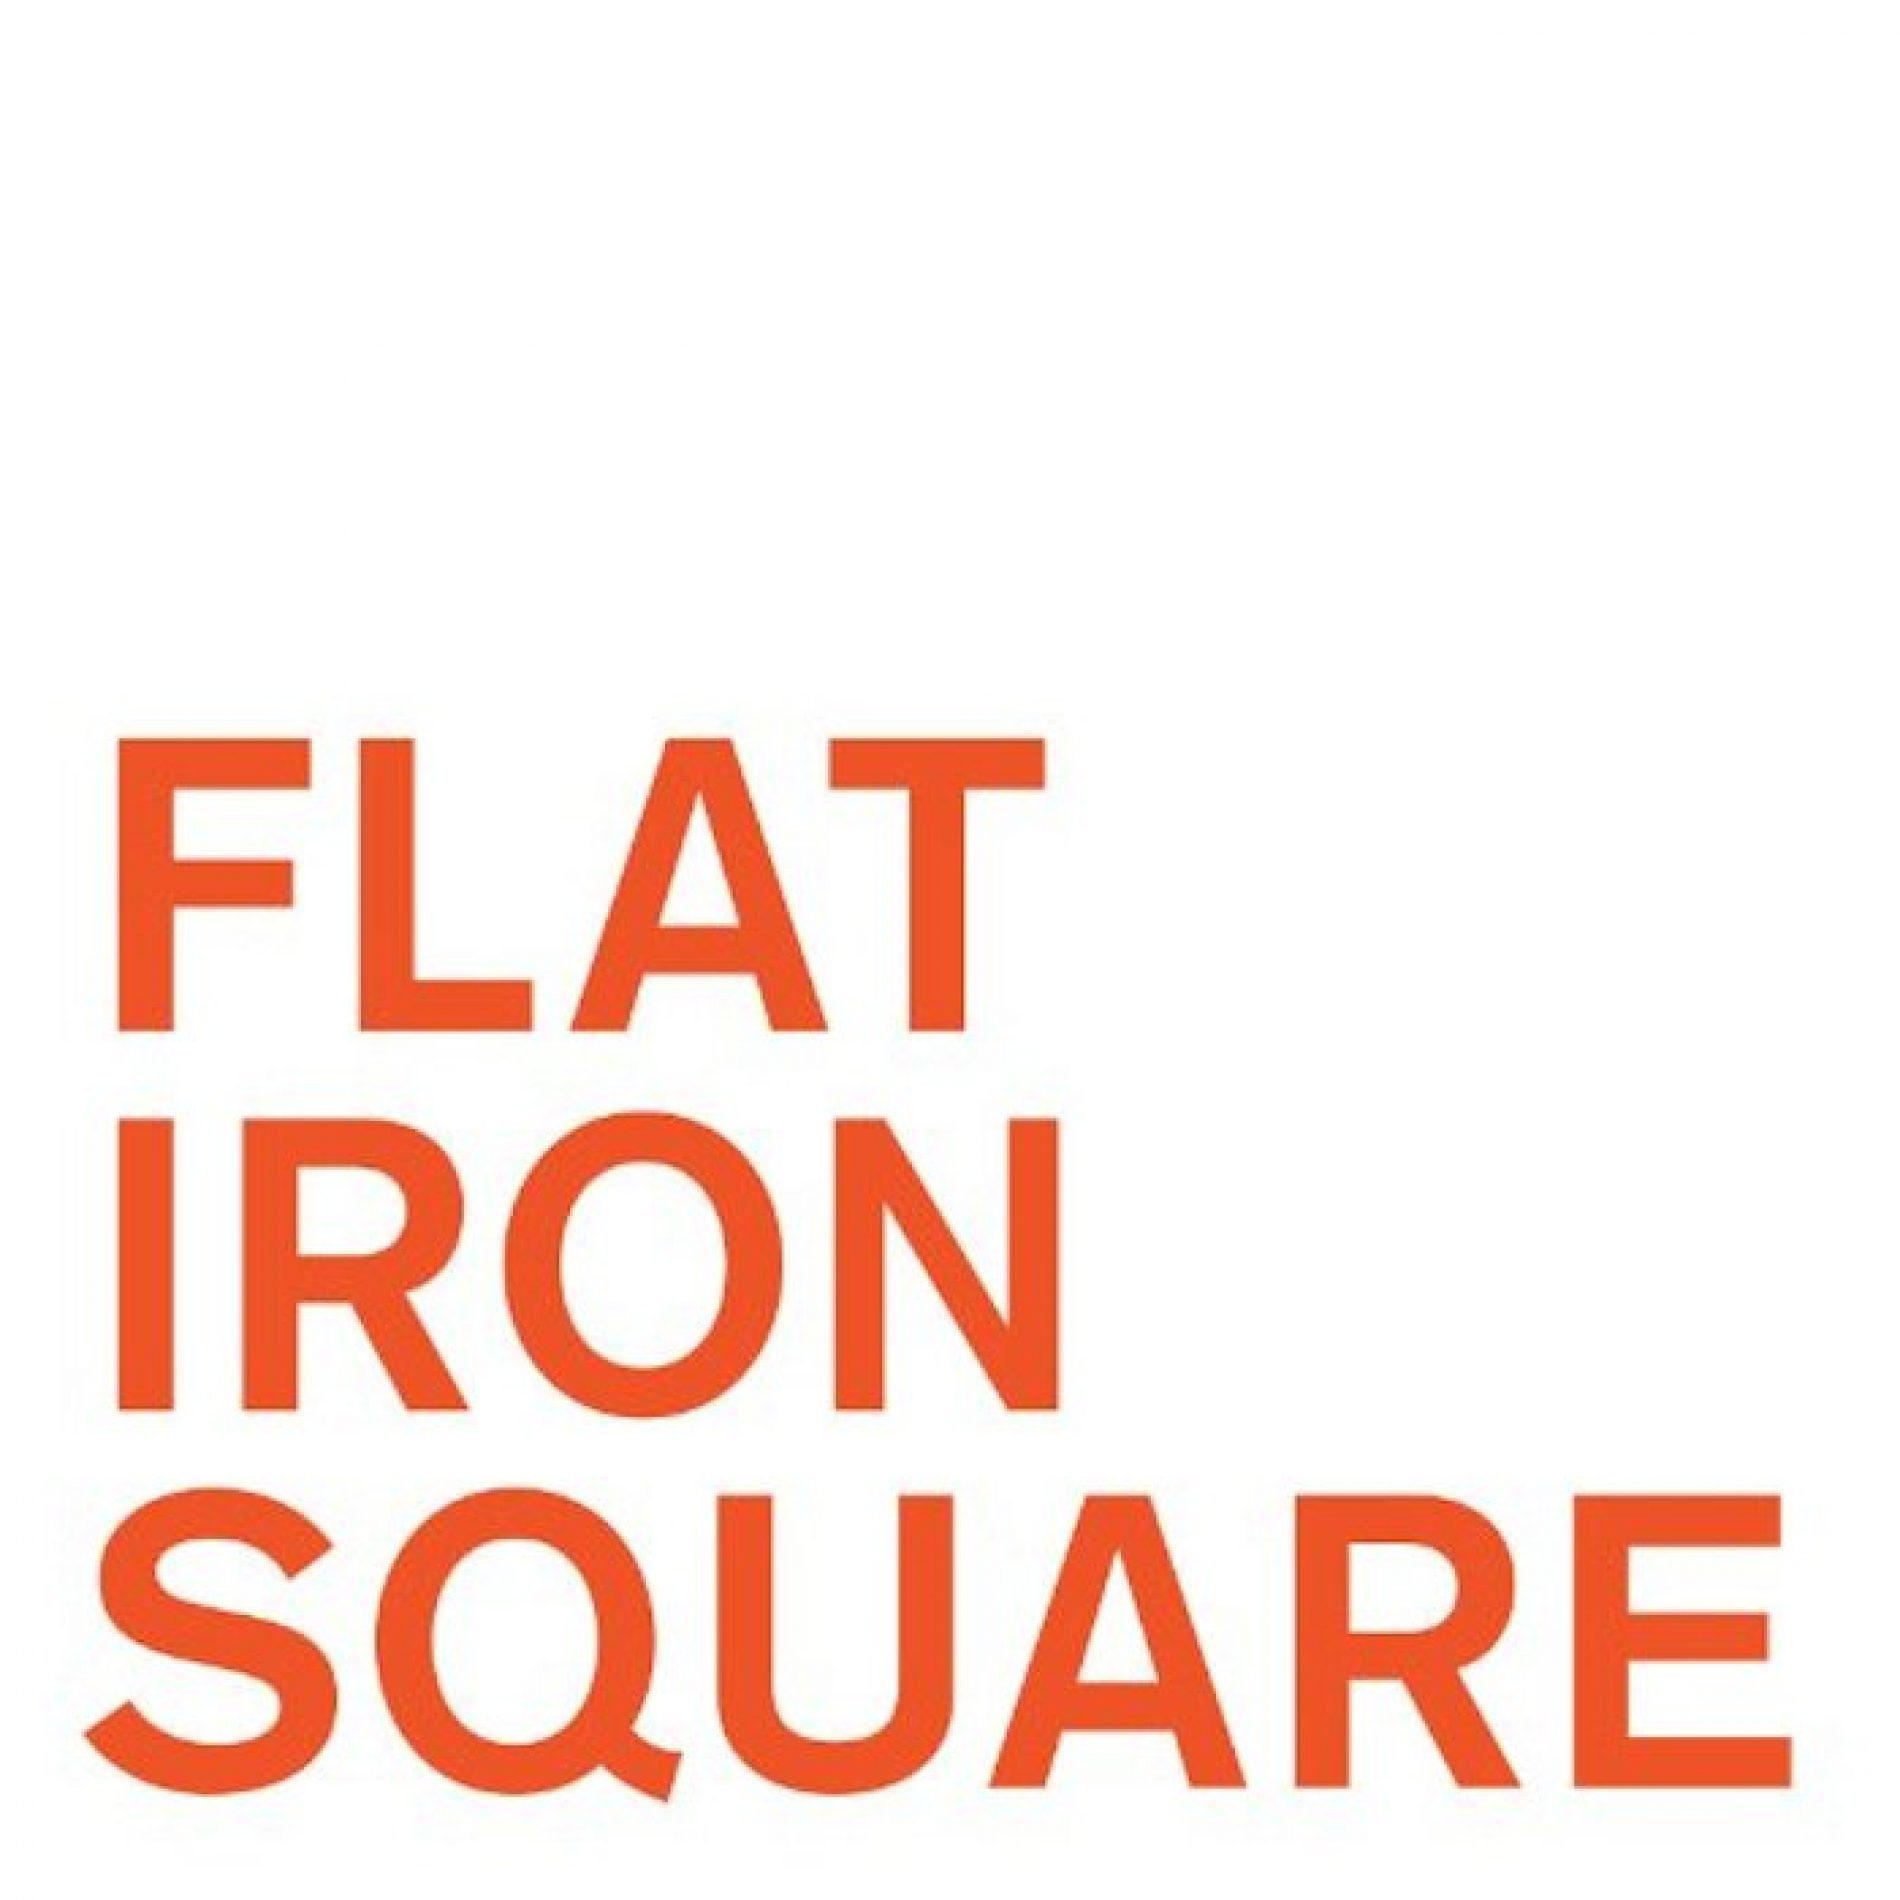 Flat Iron Square Flea market